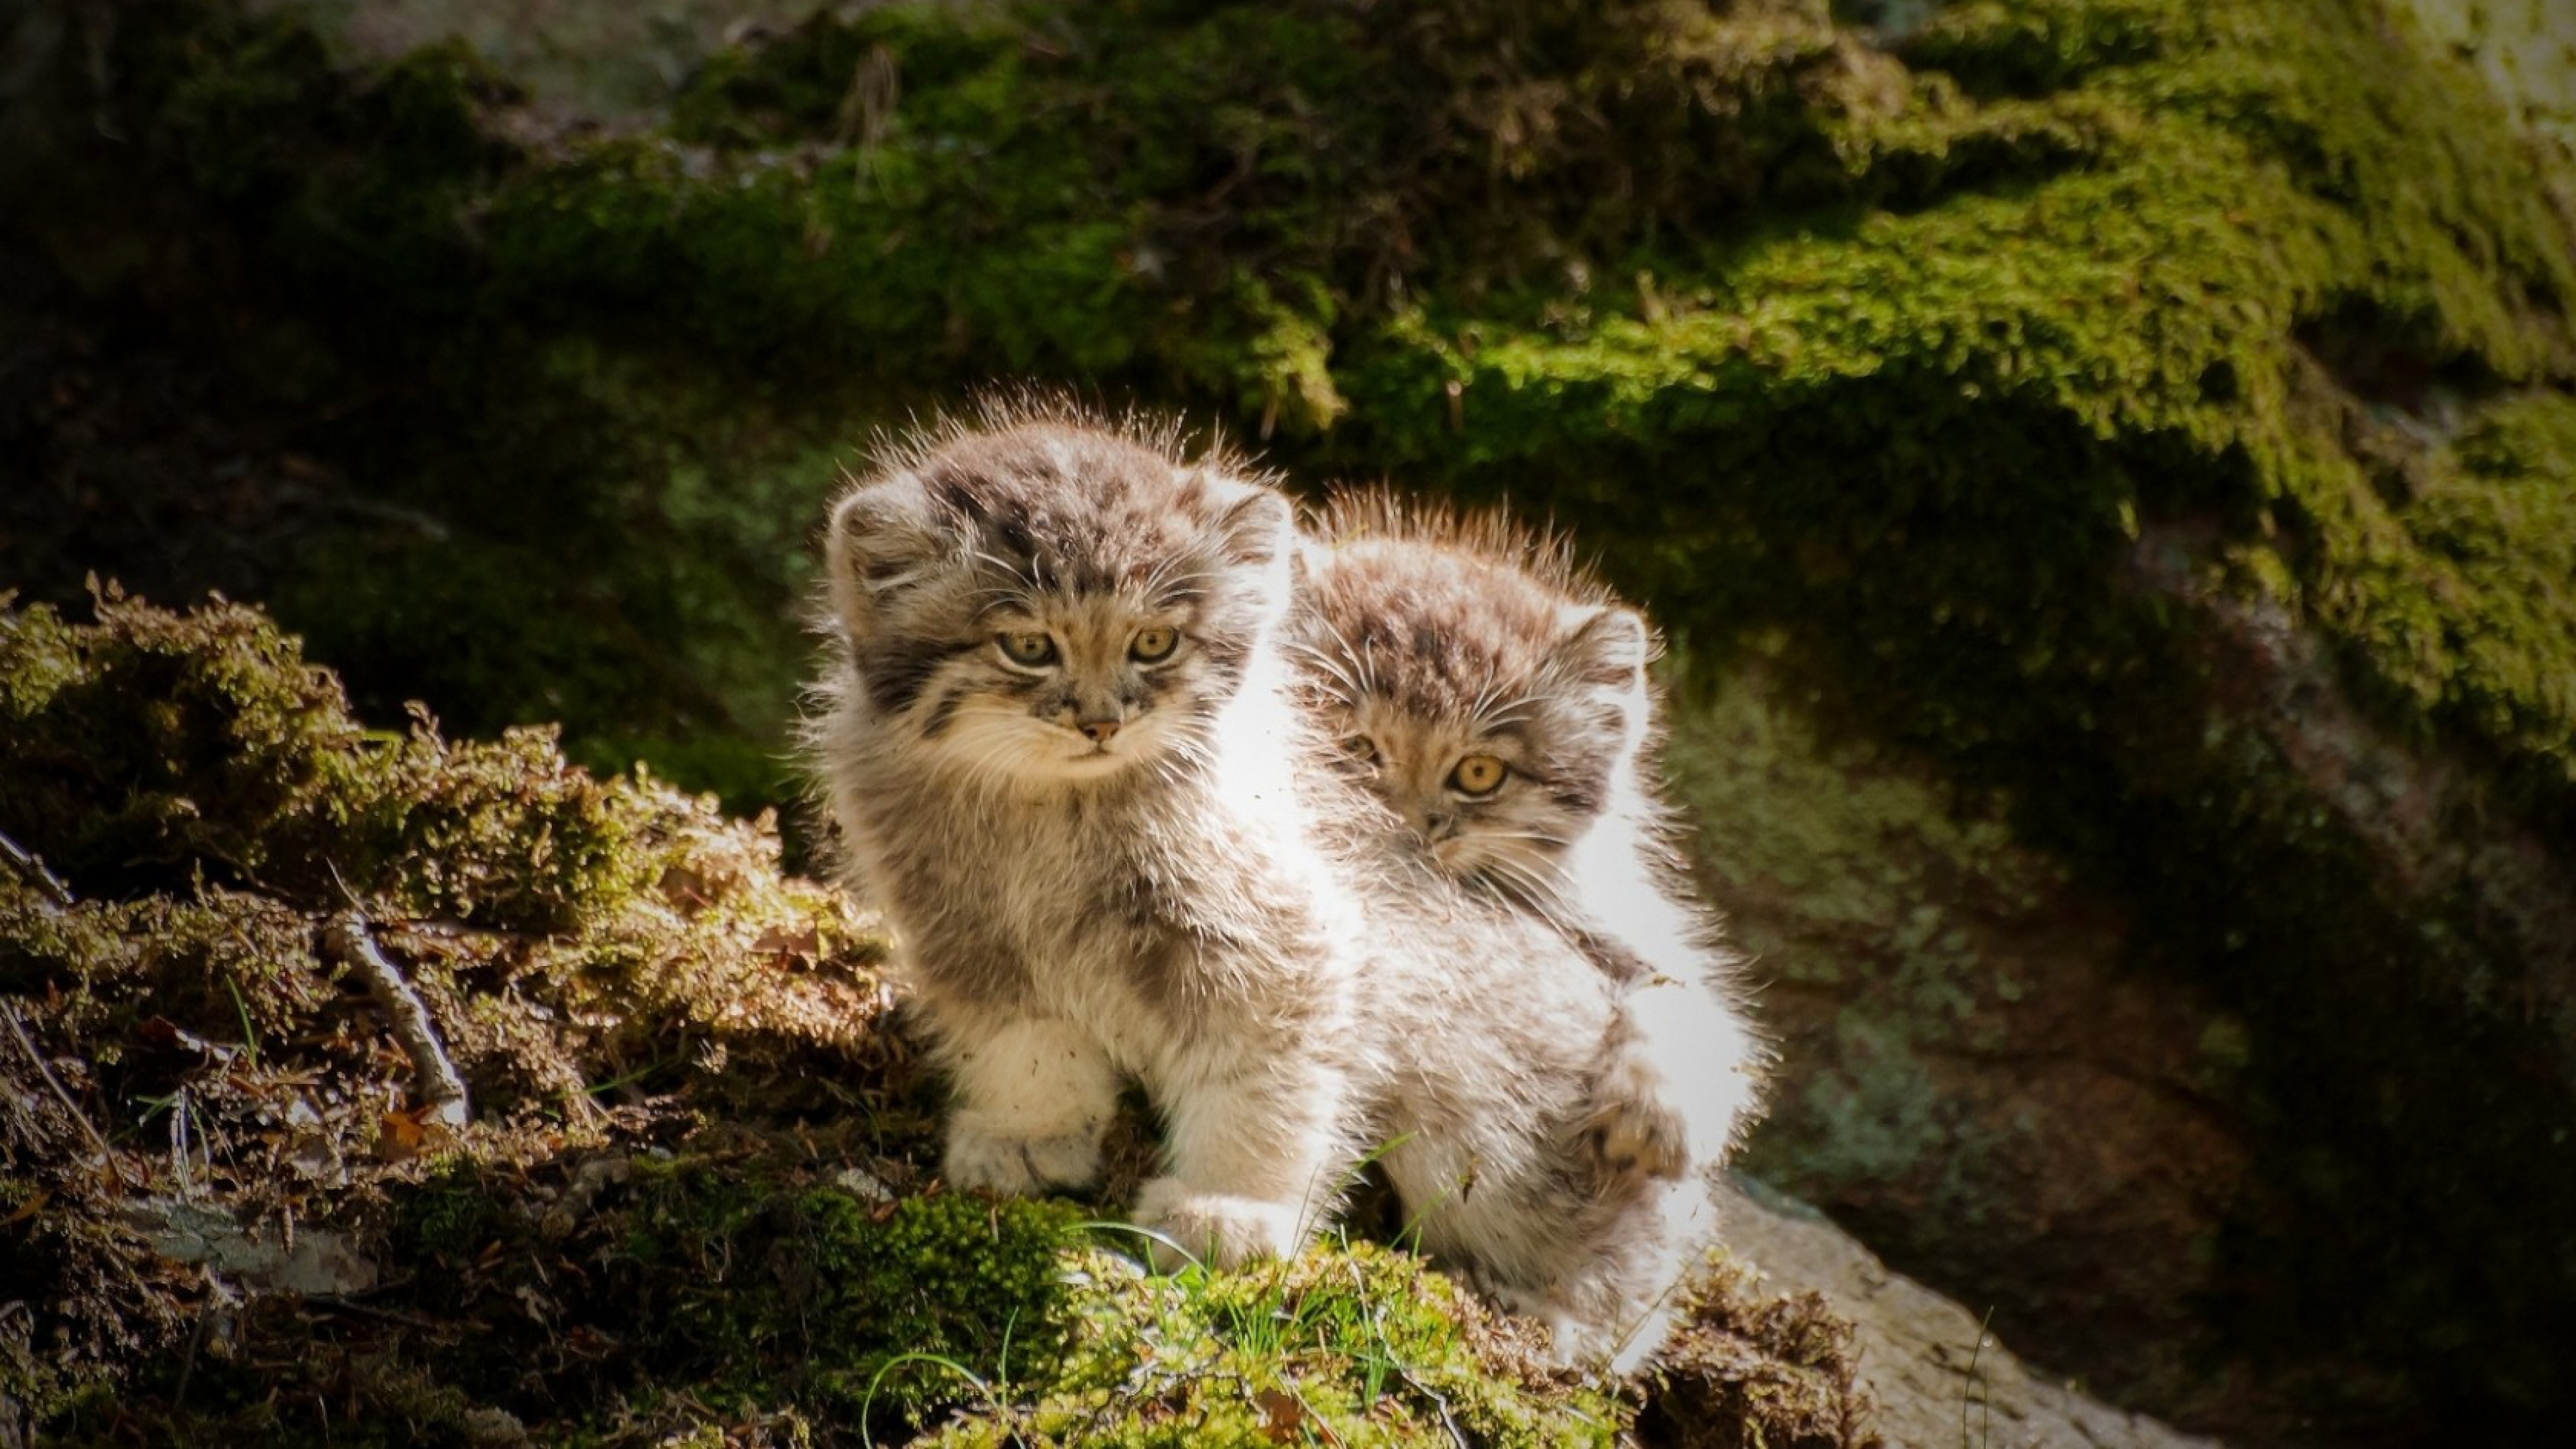 adorable kitty 1542237649 - Adorable Kitty - cat wallpapers, animals wallpapers